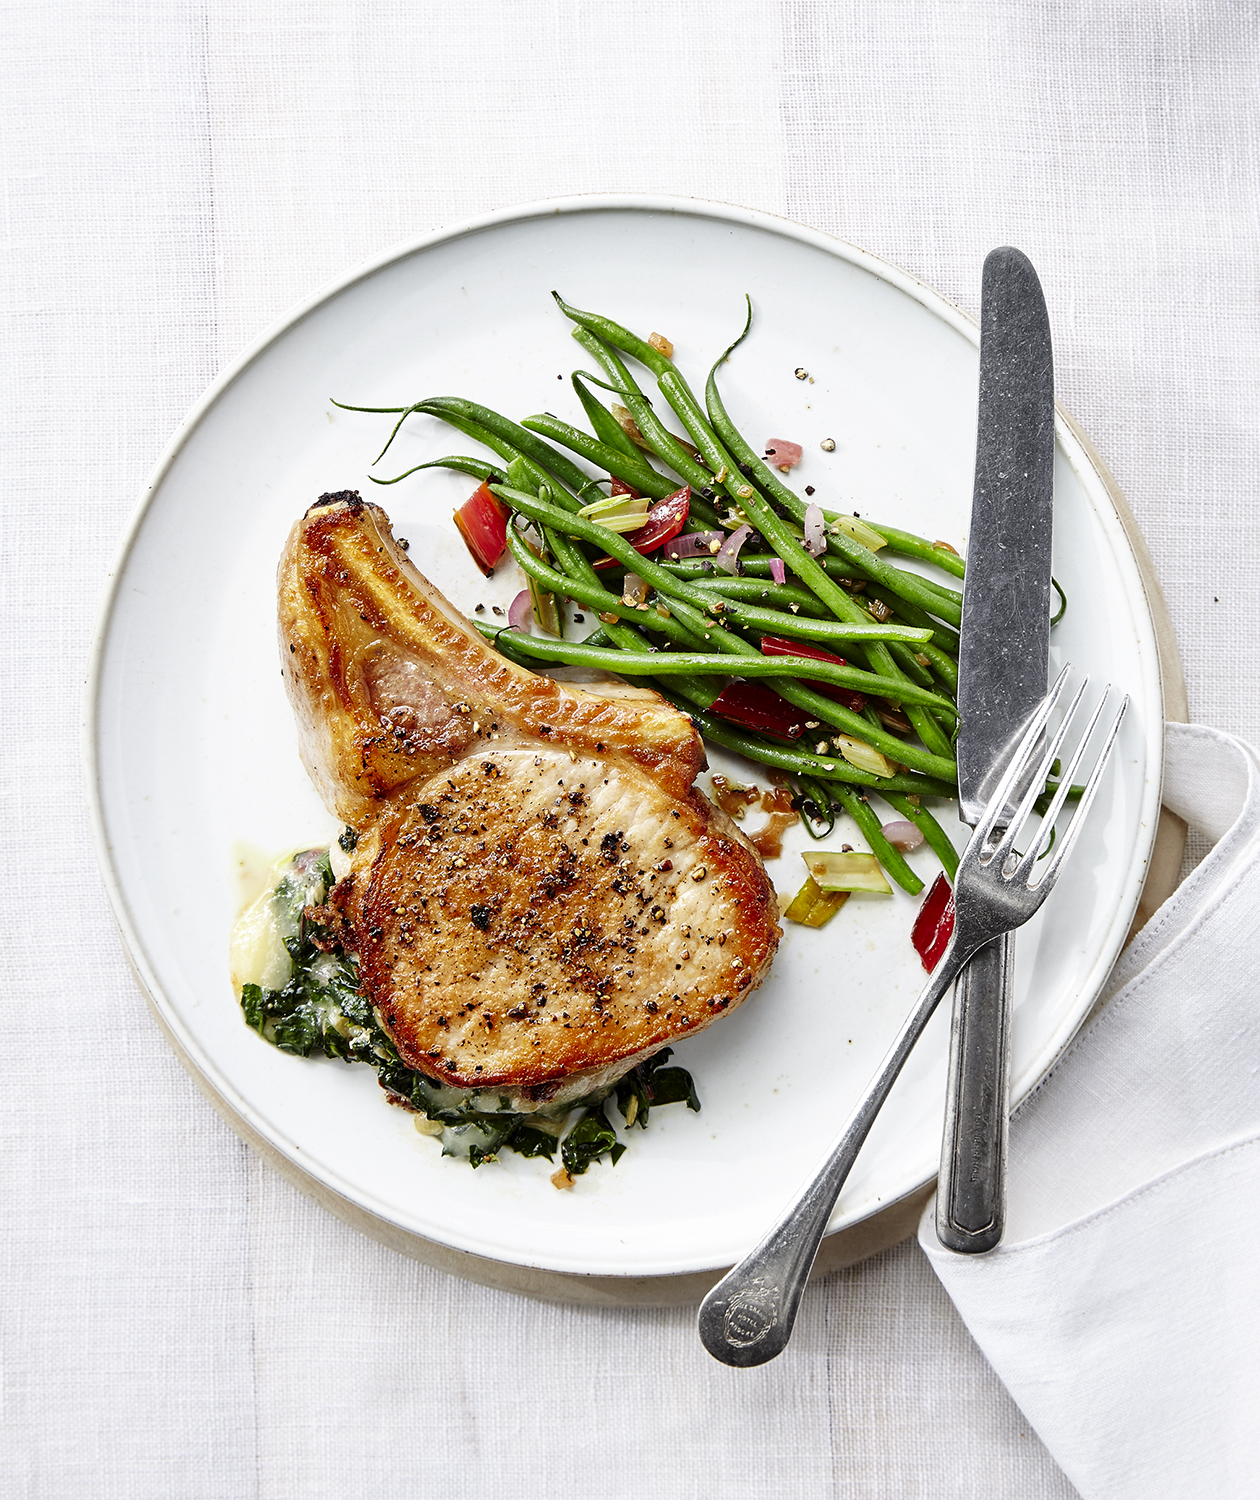 chard-pork-chops-green-beans